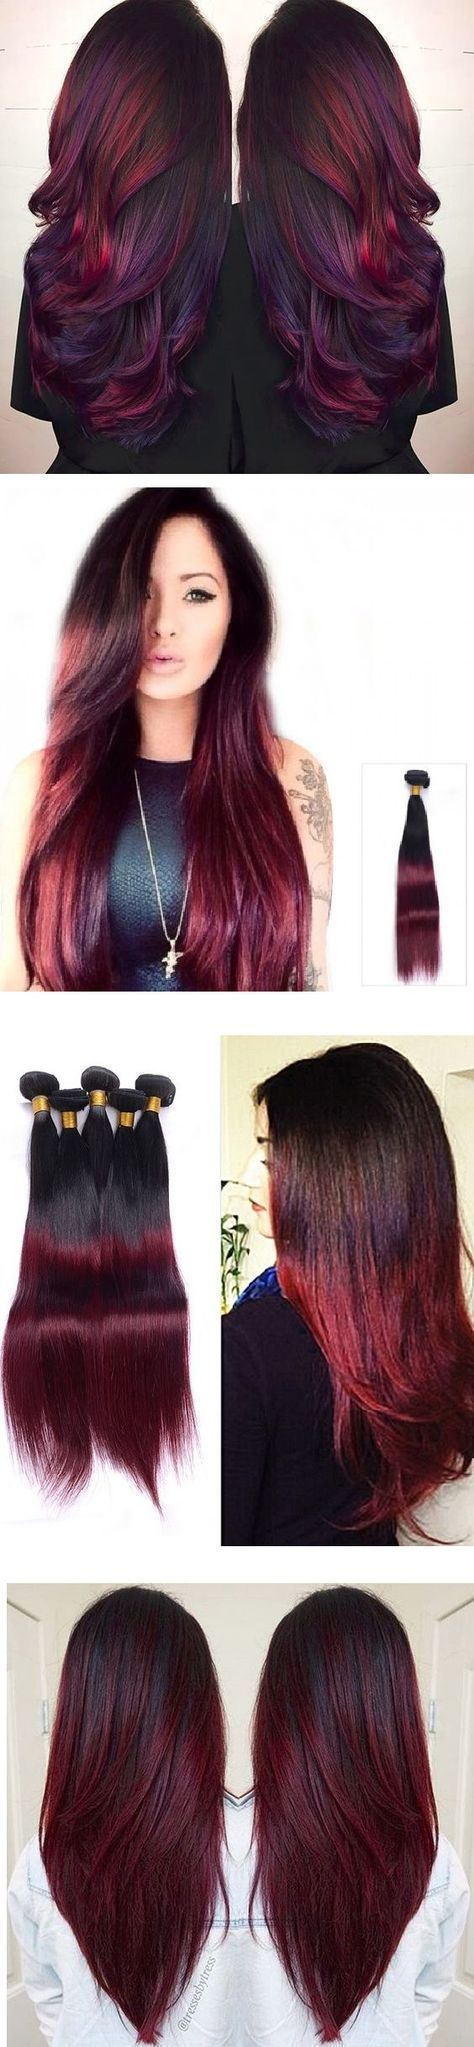 Cute Hairstyles, Rose Gold Hair, Hair Styles, Hair Cuts, Hair Color, Hair, hair color ideas for brunettes, hair styles for medium length hair, Hair Dye, Hair Braids, Hair Long, Hair Short, Hair Growth, Hair Tutorial, Hair Curly, Hair Ideas, Hair Blonde, Hair Medium Length, Hair 2017, Hair Brown, Hair Wedding, Hair Prom, Hair Natural, Hair Rose Gold, Hair Half Up Half Down, Hair Red, Hair Blue, Hair Updos, Hair Brunette, Hair Purple, Hair Balayage, Hair Ombre, Hair Dark, Hair Black, #longhair